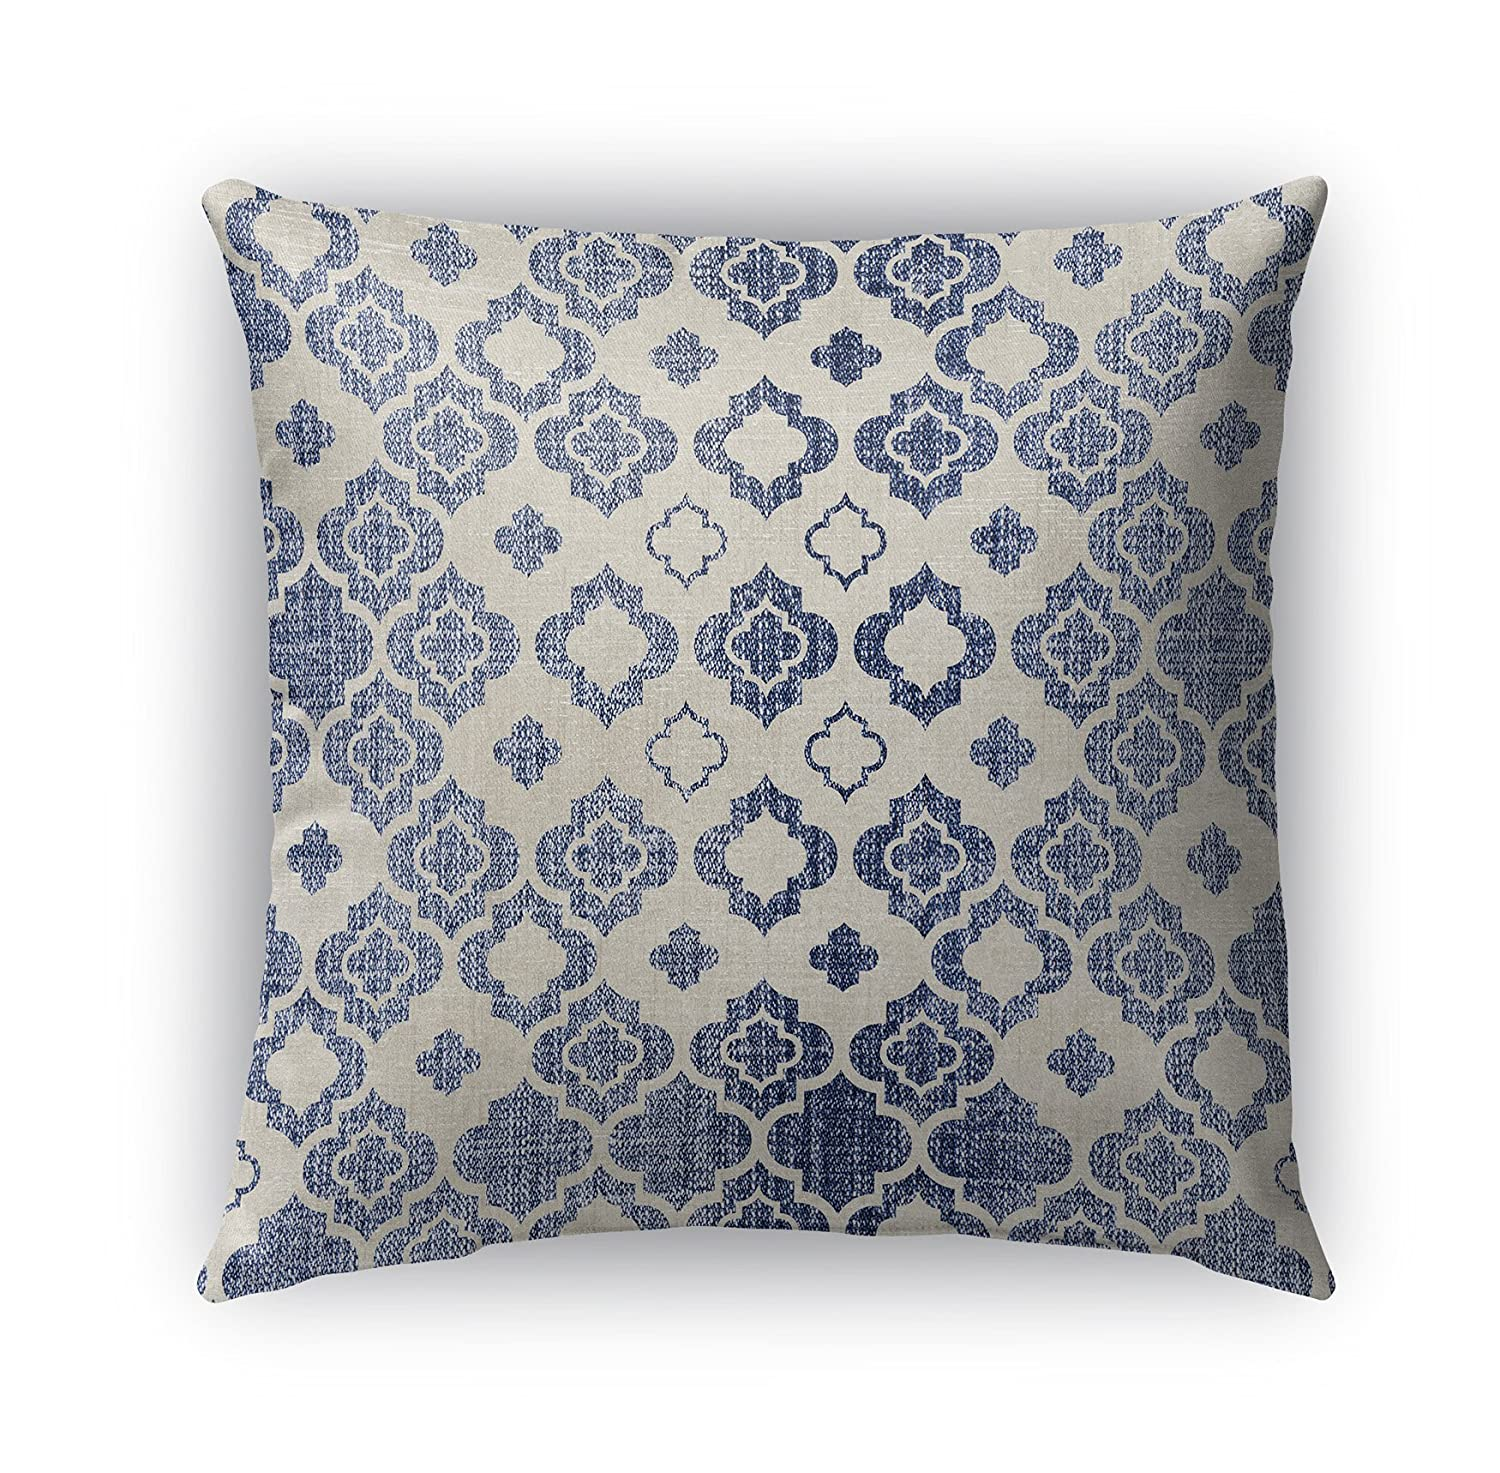 KAVKA Designs Cagliari Indoor-Outdoor Pillow, Size: 18X18X6 - TELAVC1473OD18 Blue//Ivory - Encompass Collection